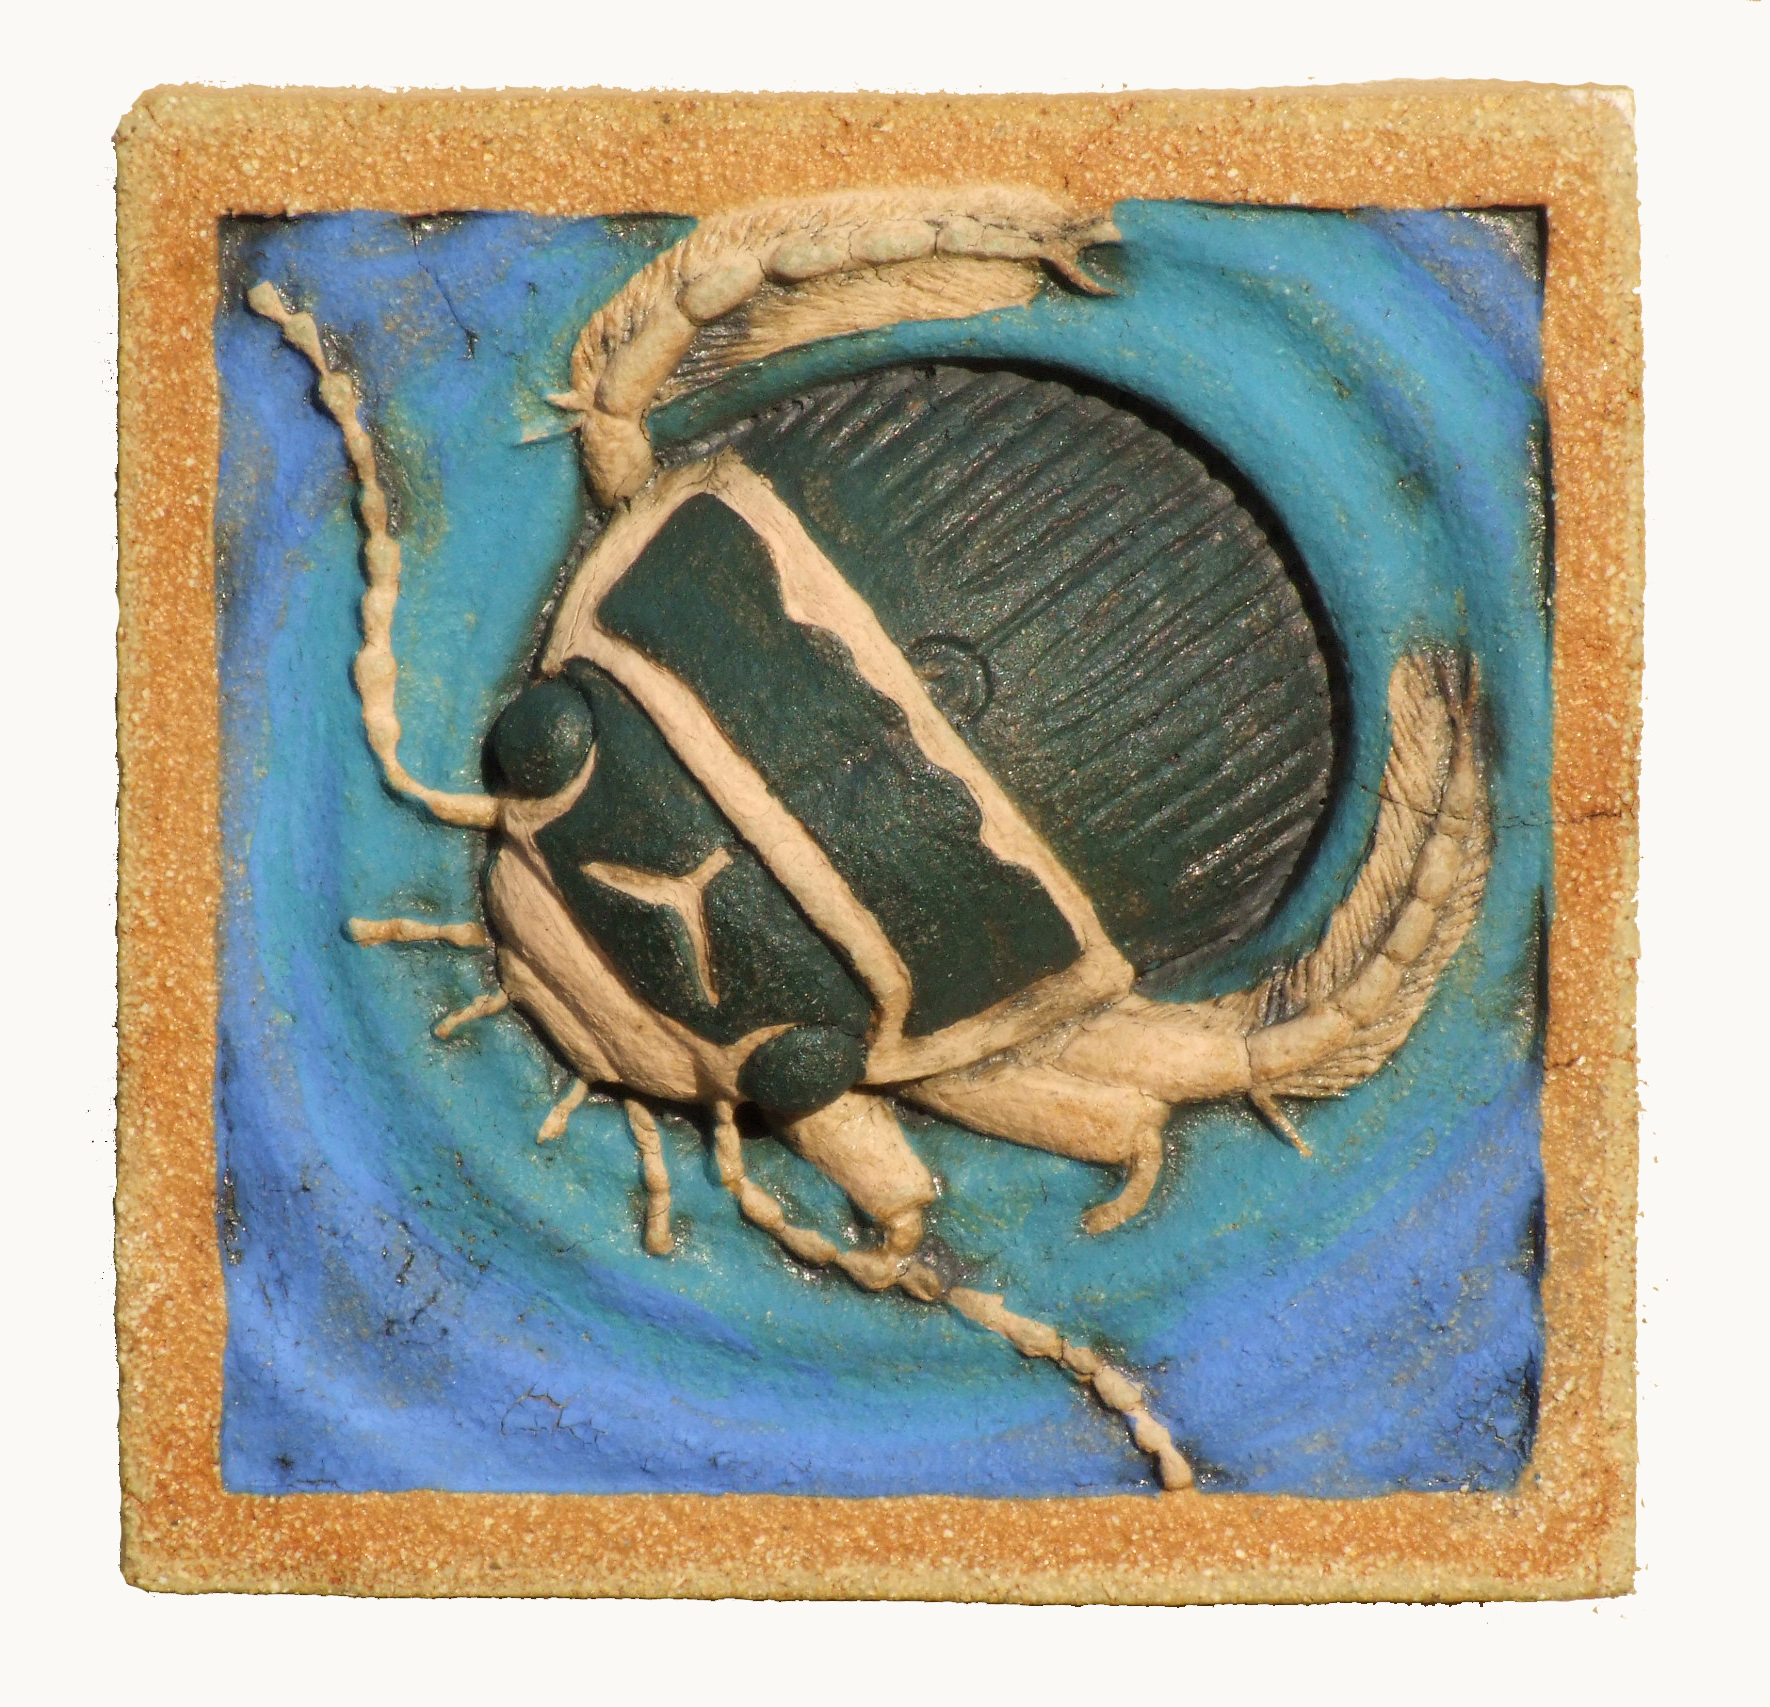 Great Diving Beetle with underglaze and copper jpg